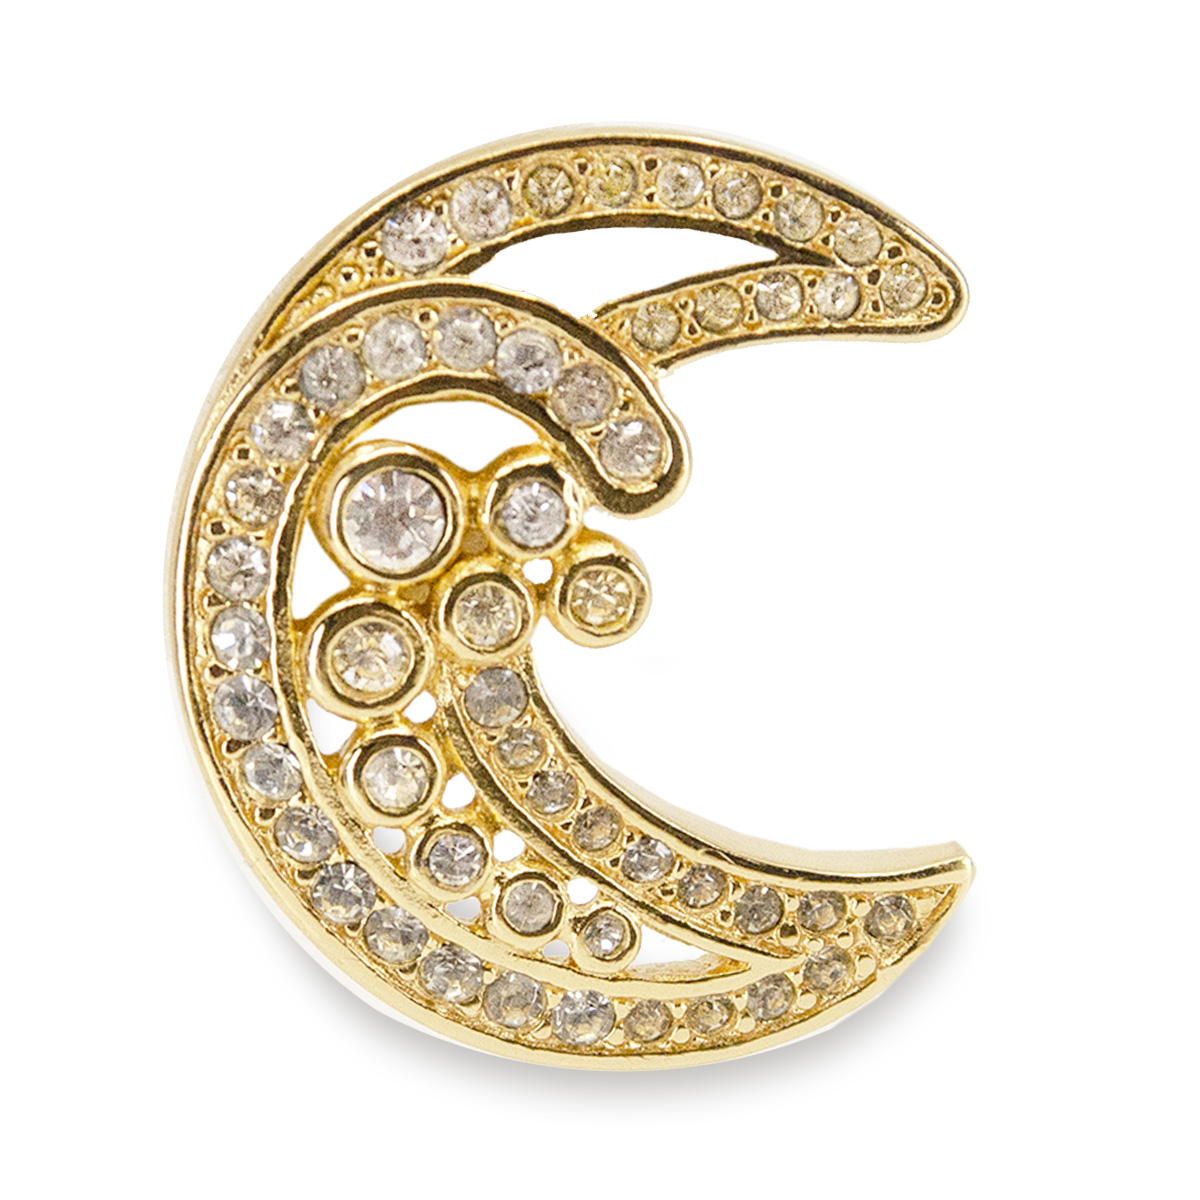 Dior Crescent moon pin